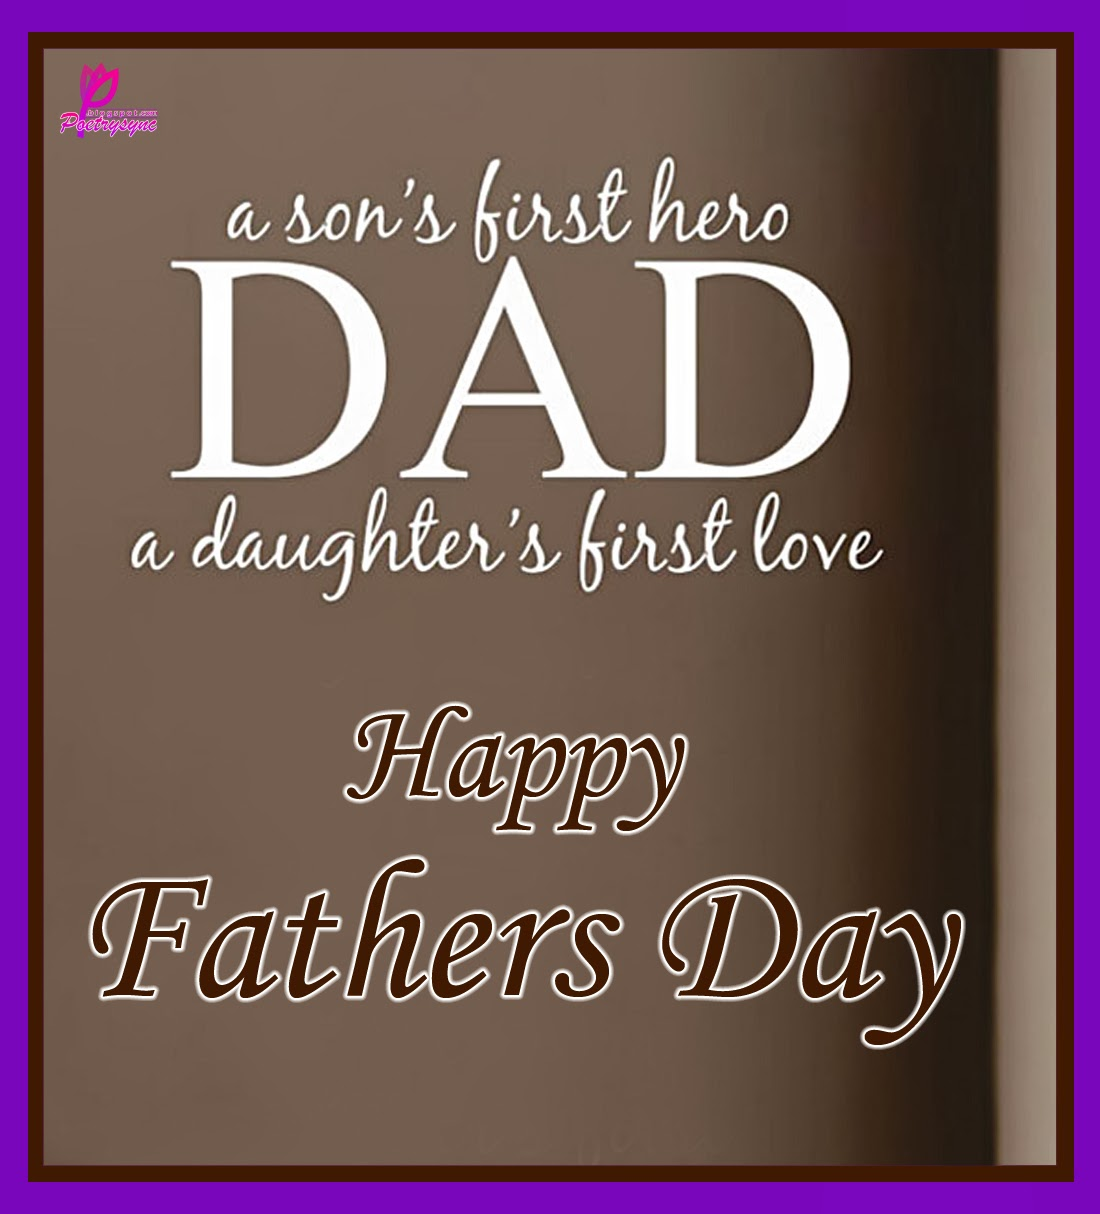 Happy Fathers Day From Your Son And Daughter Clipart.